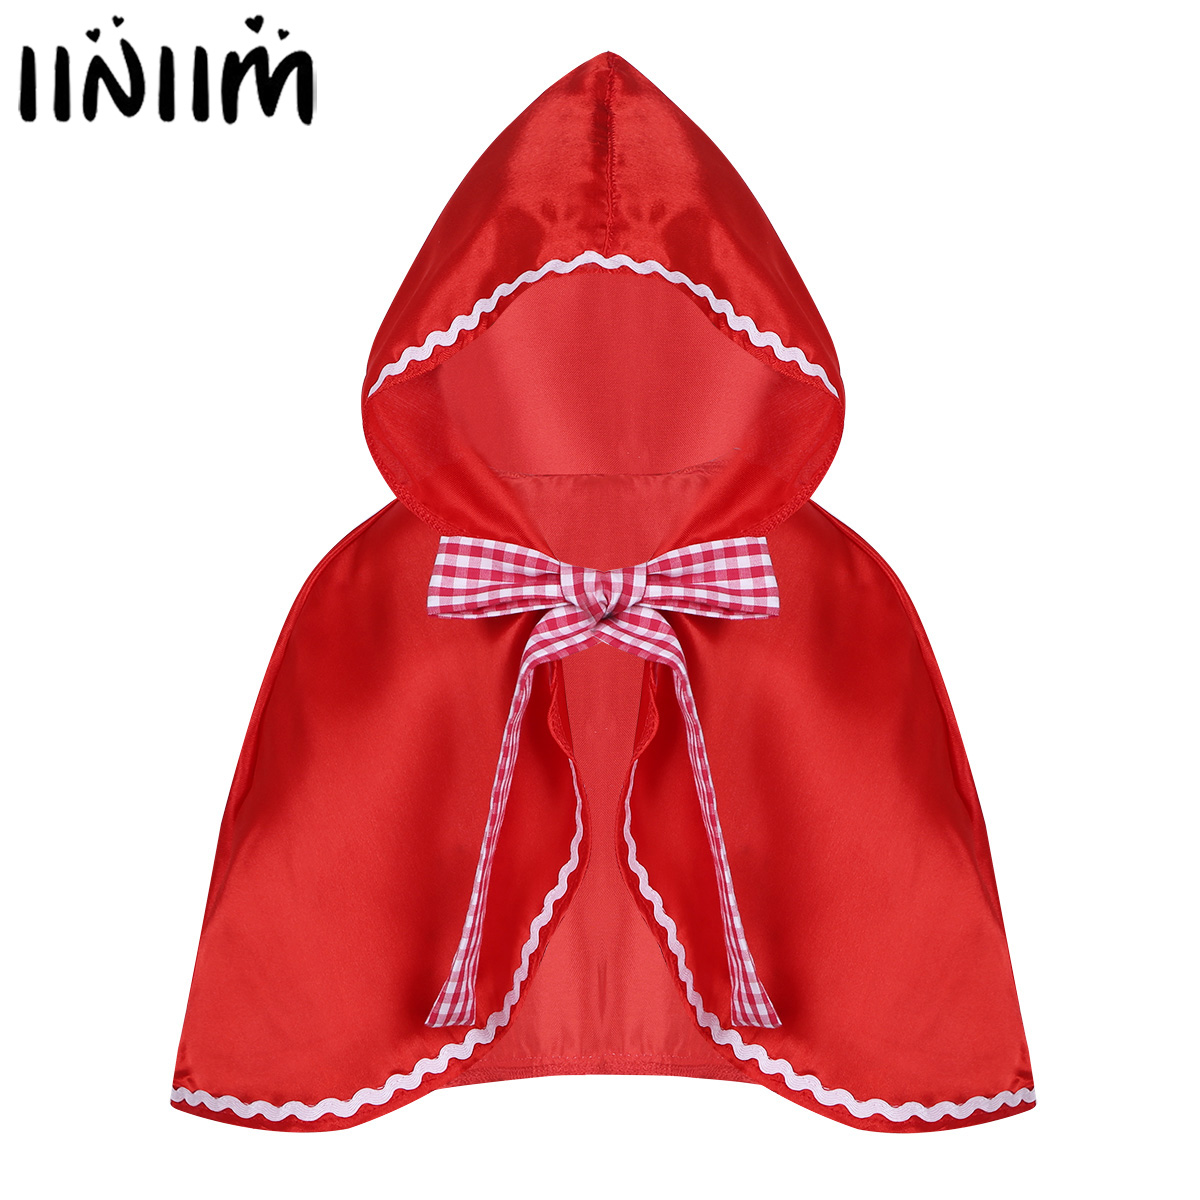 Baby Kids Girls Fancy Costumes Hooded Cloak Cape for Halloween Cosplay Red Riding Hood Party Costume Dress Up Masquerade